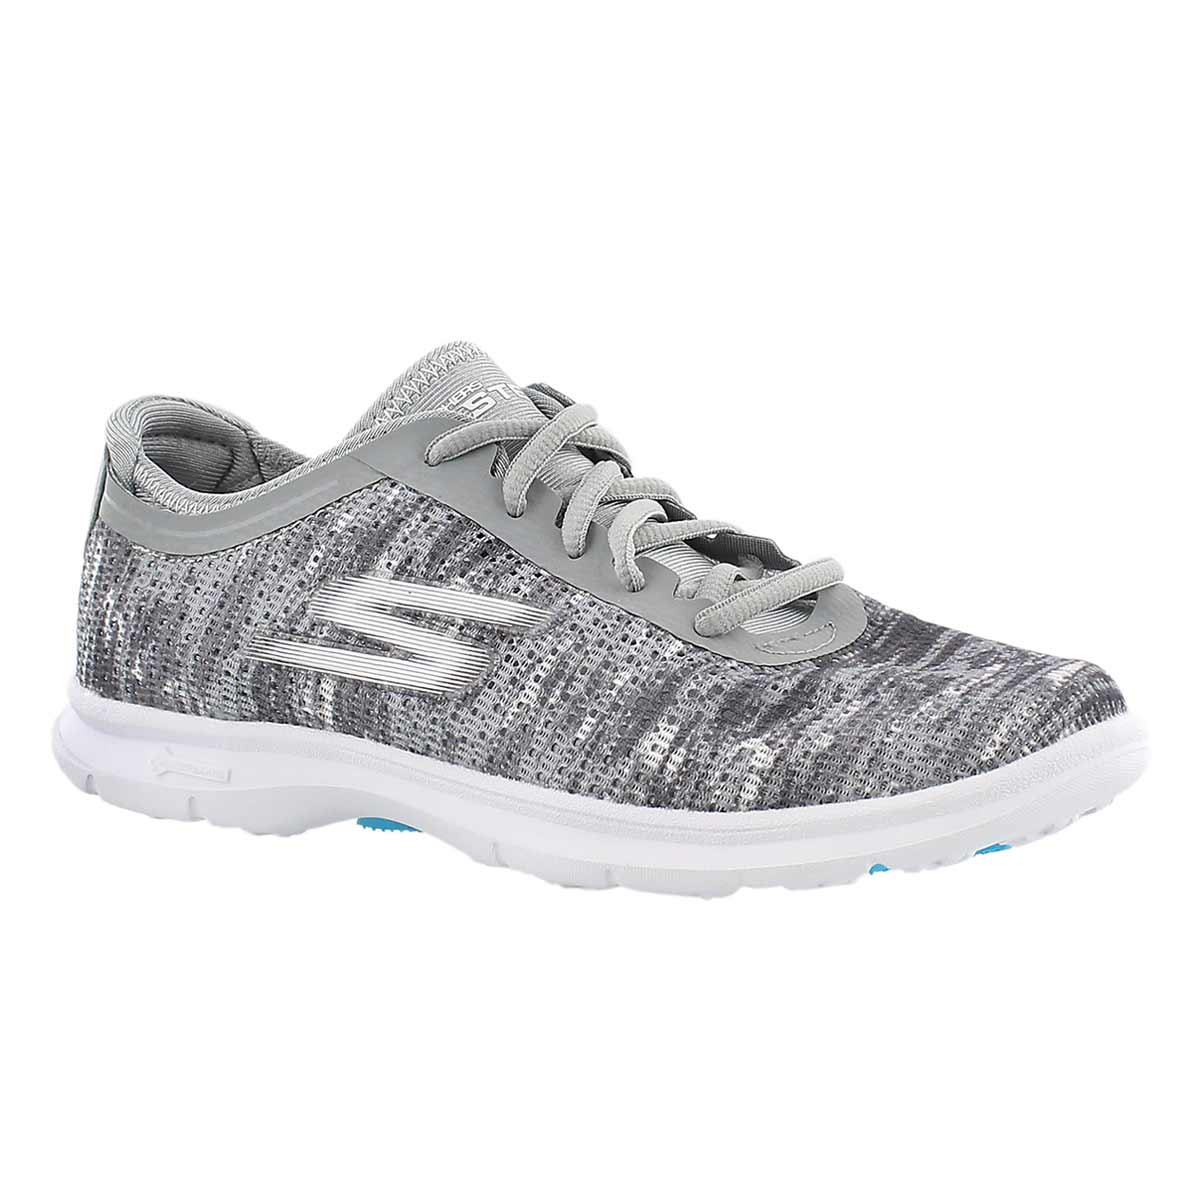 Lds GOstep gry/wht laceup sneaker